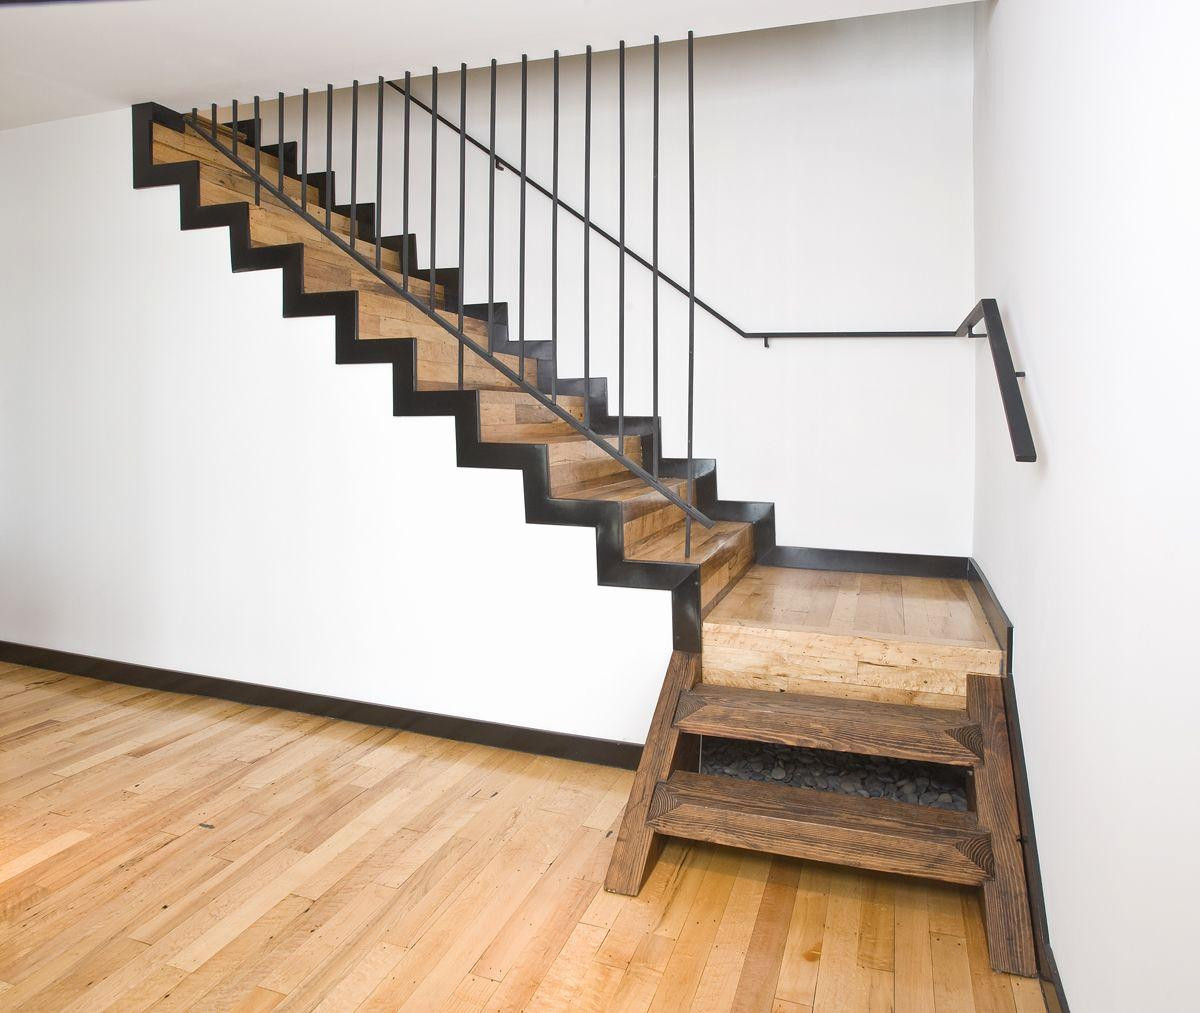 how to install hardwood flooring on stairs of new of diy stair railing ideas stock artsvisuelscaribeens com in diy stair railing ideas elegant staircase railing ideas pin od poua¾vatea¾a